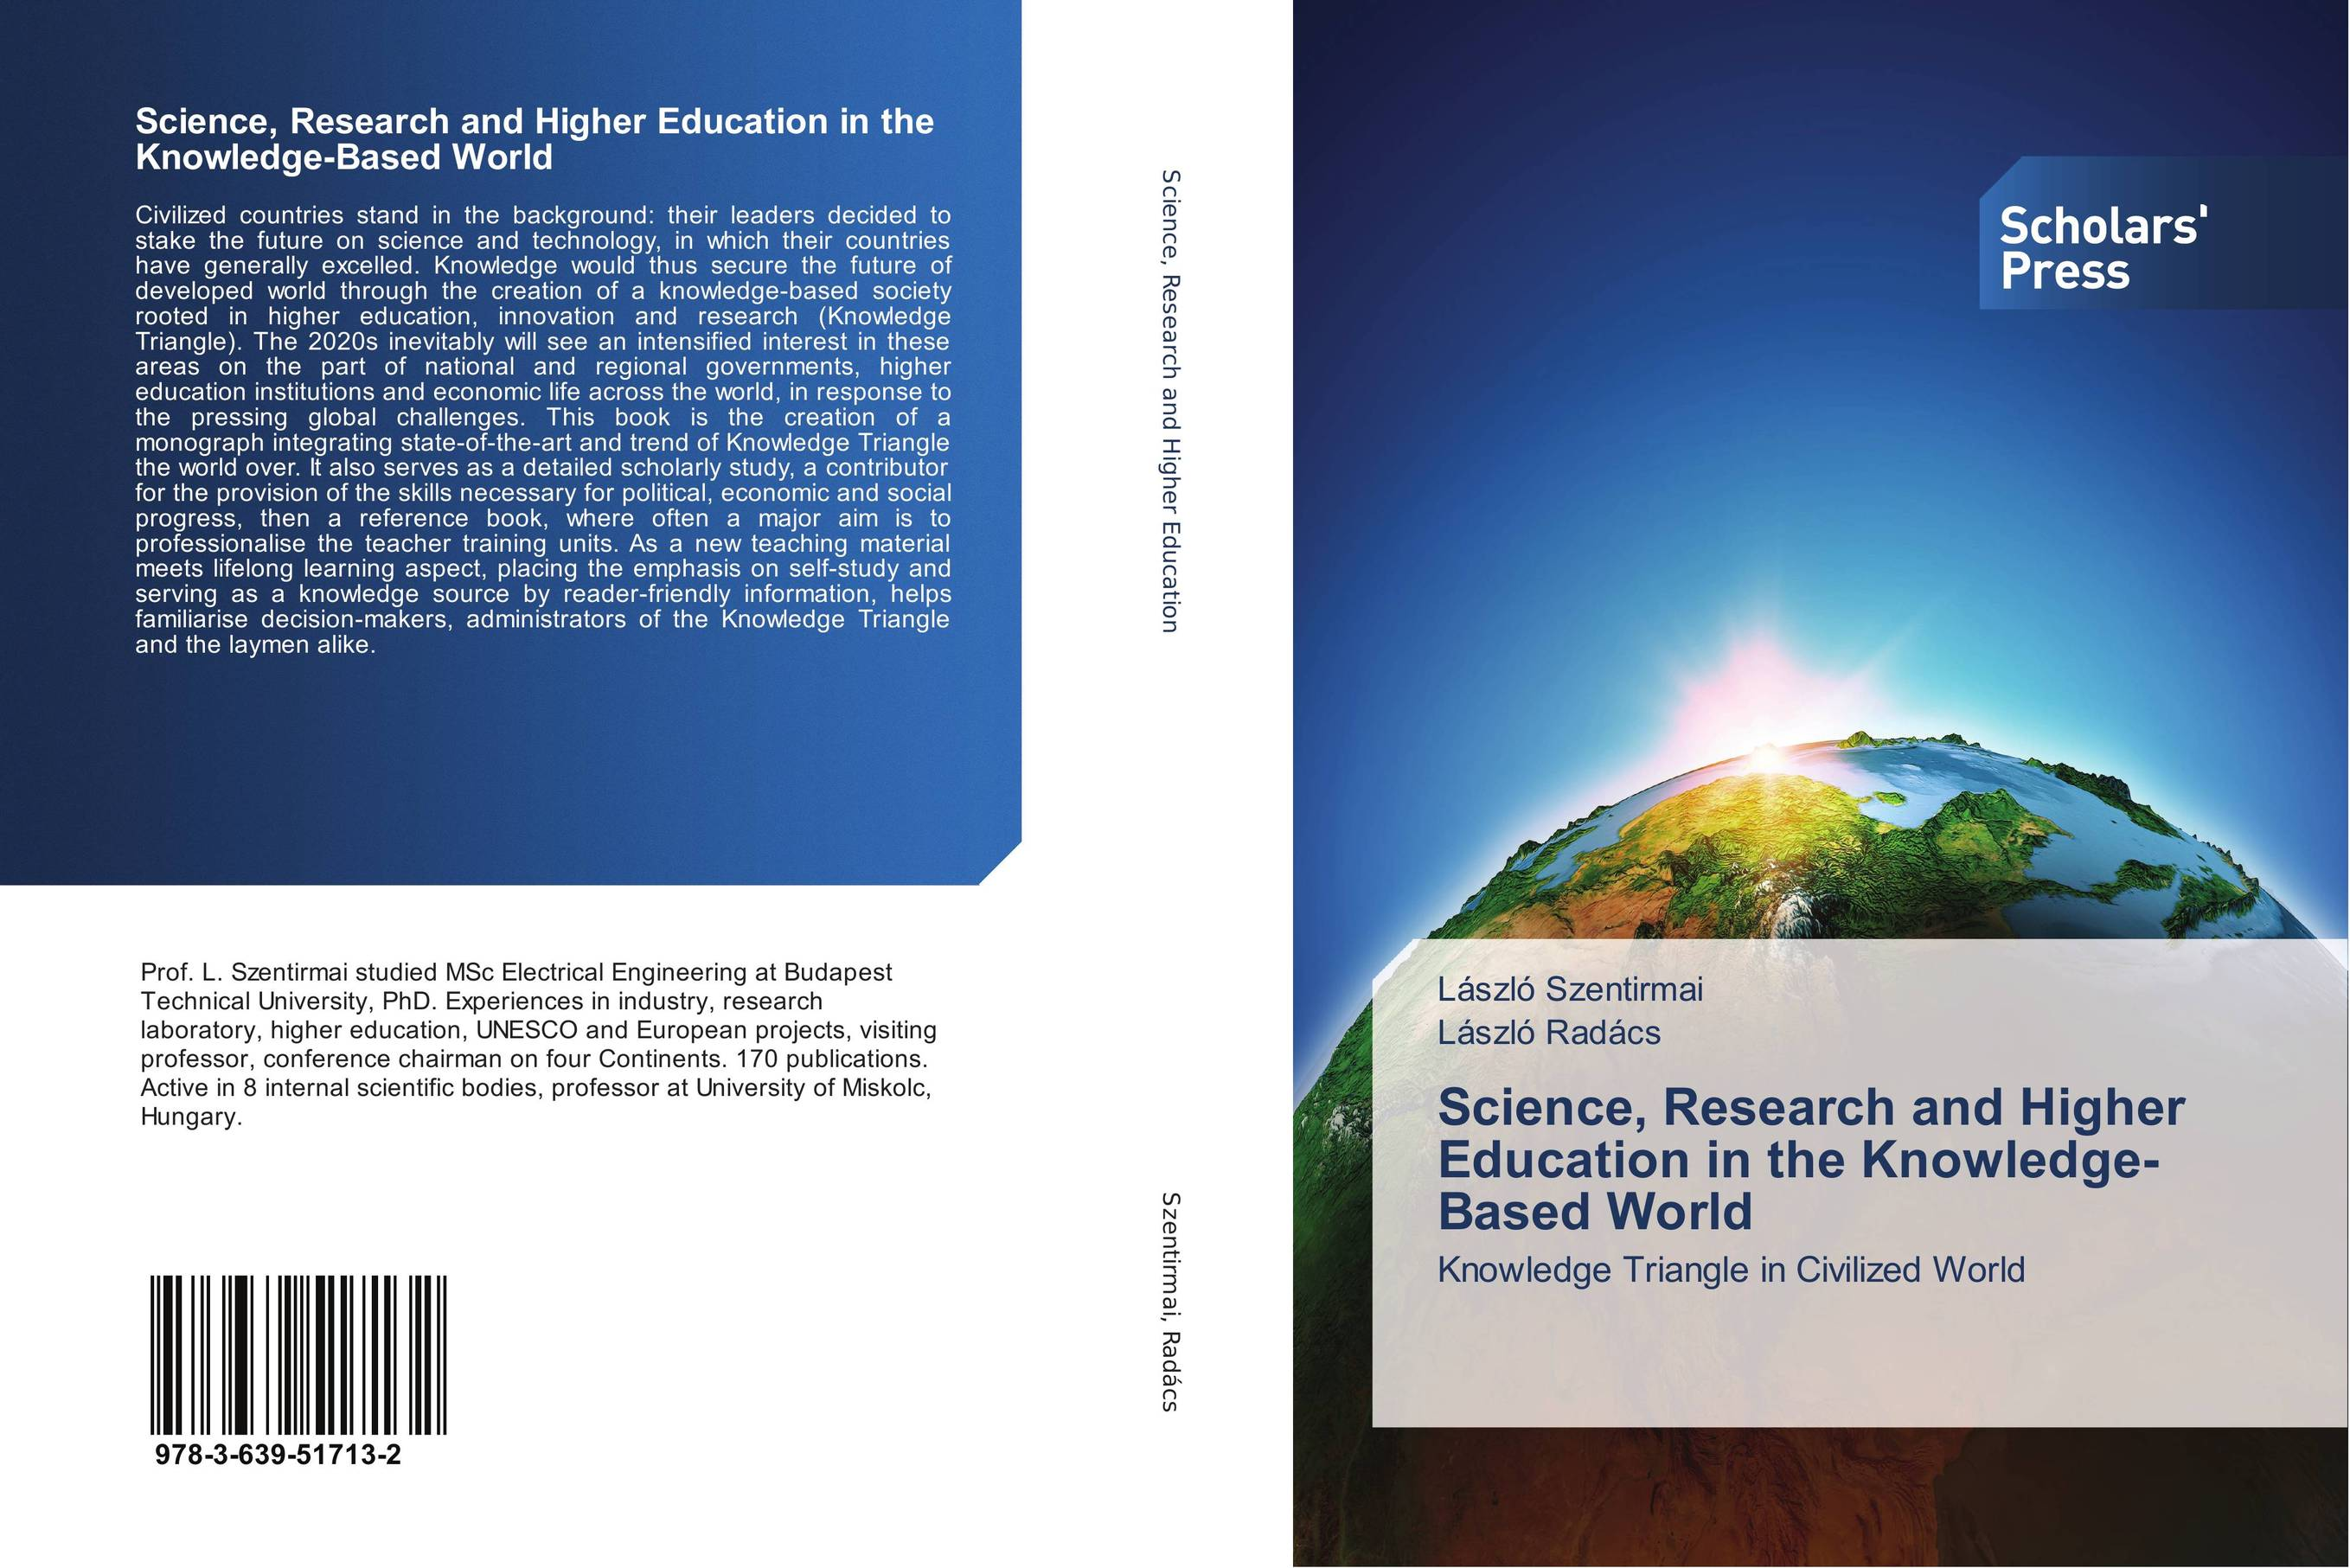 Science, Research and Higher Education in the Knowledge-Based World voluntary associations in tsarist russia – science patriotism and civil society